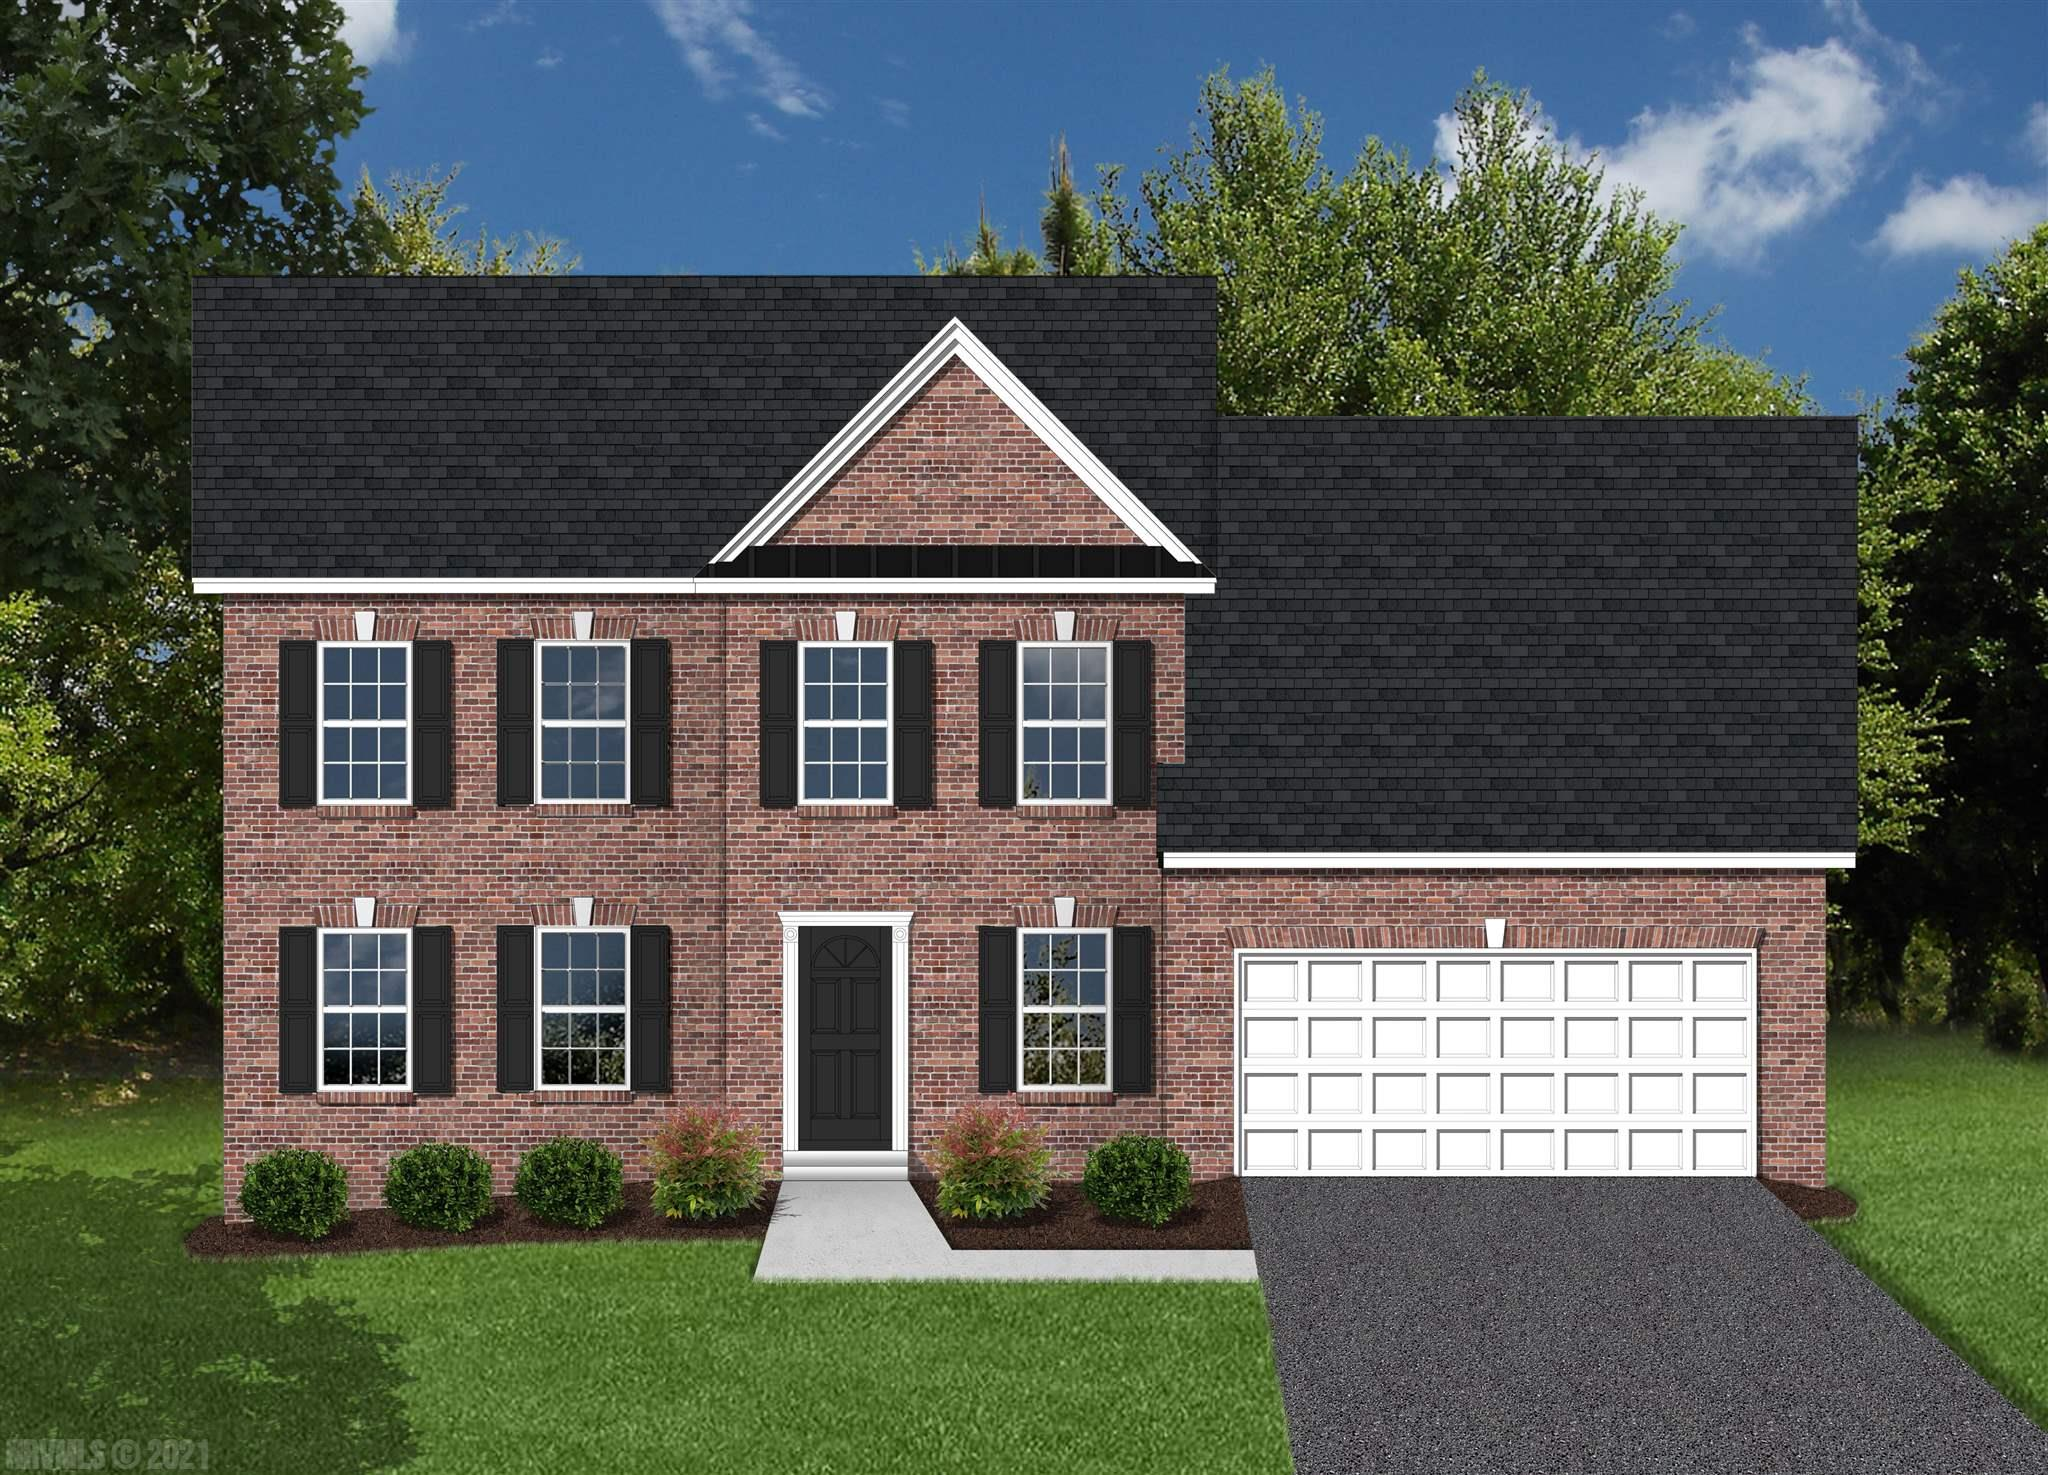 This is a pre-construction, Proposed listing that is not yet built. Our Lexington B style home offers 2,131 square feet above grade, and 9' framed walls on first floor with smooth drywall finish. This house plan incorporates hardwoods in the foyer, dining, kitchen and half bath, ceramic tile in the baths and laundry, and carpet throughout remaining areas. Oak treads to the second floor where applicable. The master shower offers ceramic tiled walls! Premium Tahoe cabinets by Timberlake in the kitchen make the home even more beautiful. The kitchen counter tops are luxurious granite and the bathrooms are cultured marble. Crown molding can be found in the dining room and master bedroom, as well as chair rail with wainscoting in the dining room. The exterior finishes consist of double-hung windows, brick, siding, and architectural shingles. Kensington is conveniently located in Christiansburg off Mud Pike Road and is adjacent the Christiansburg Middle School.